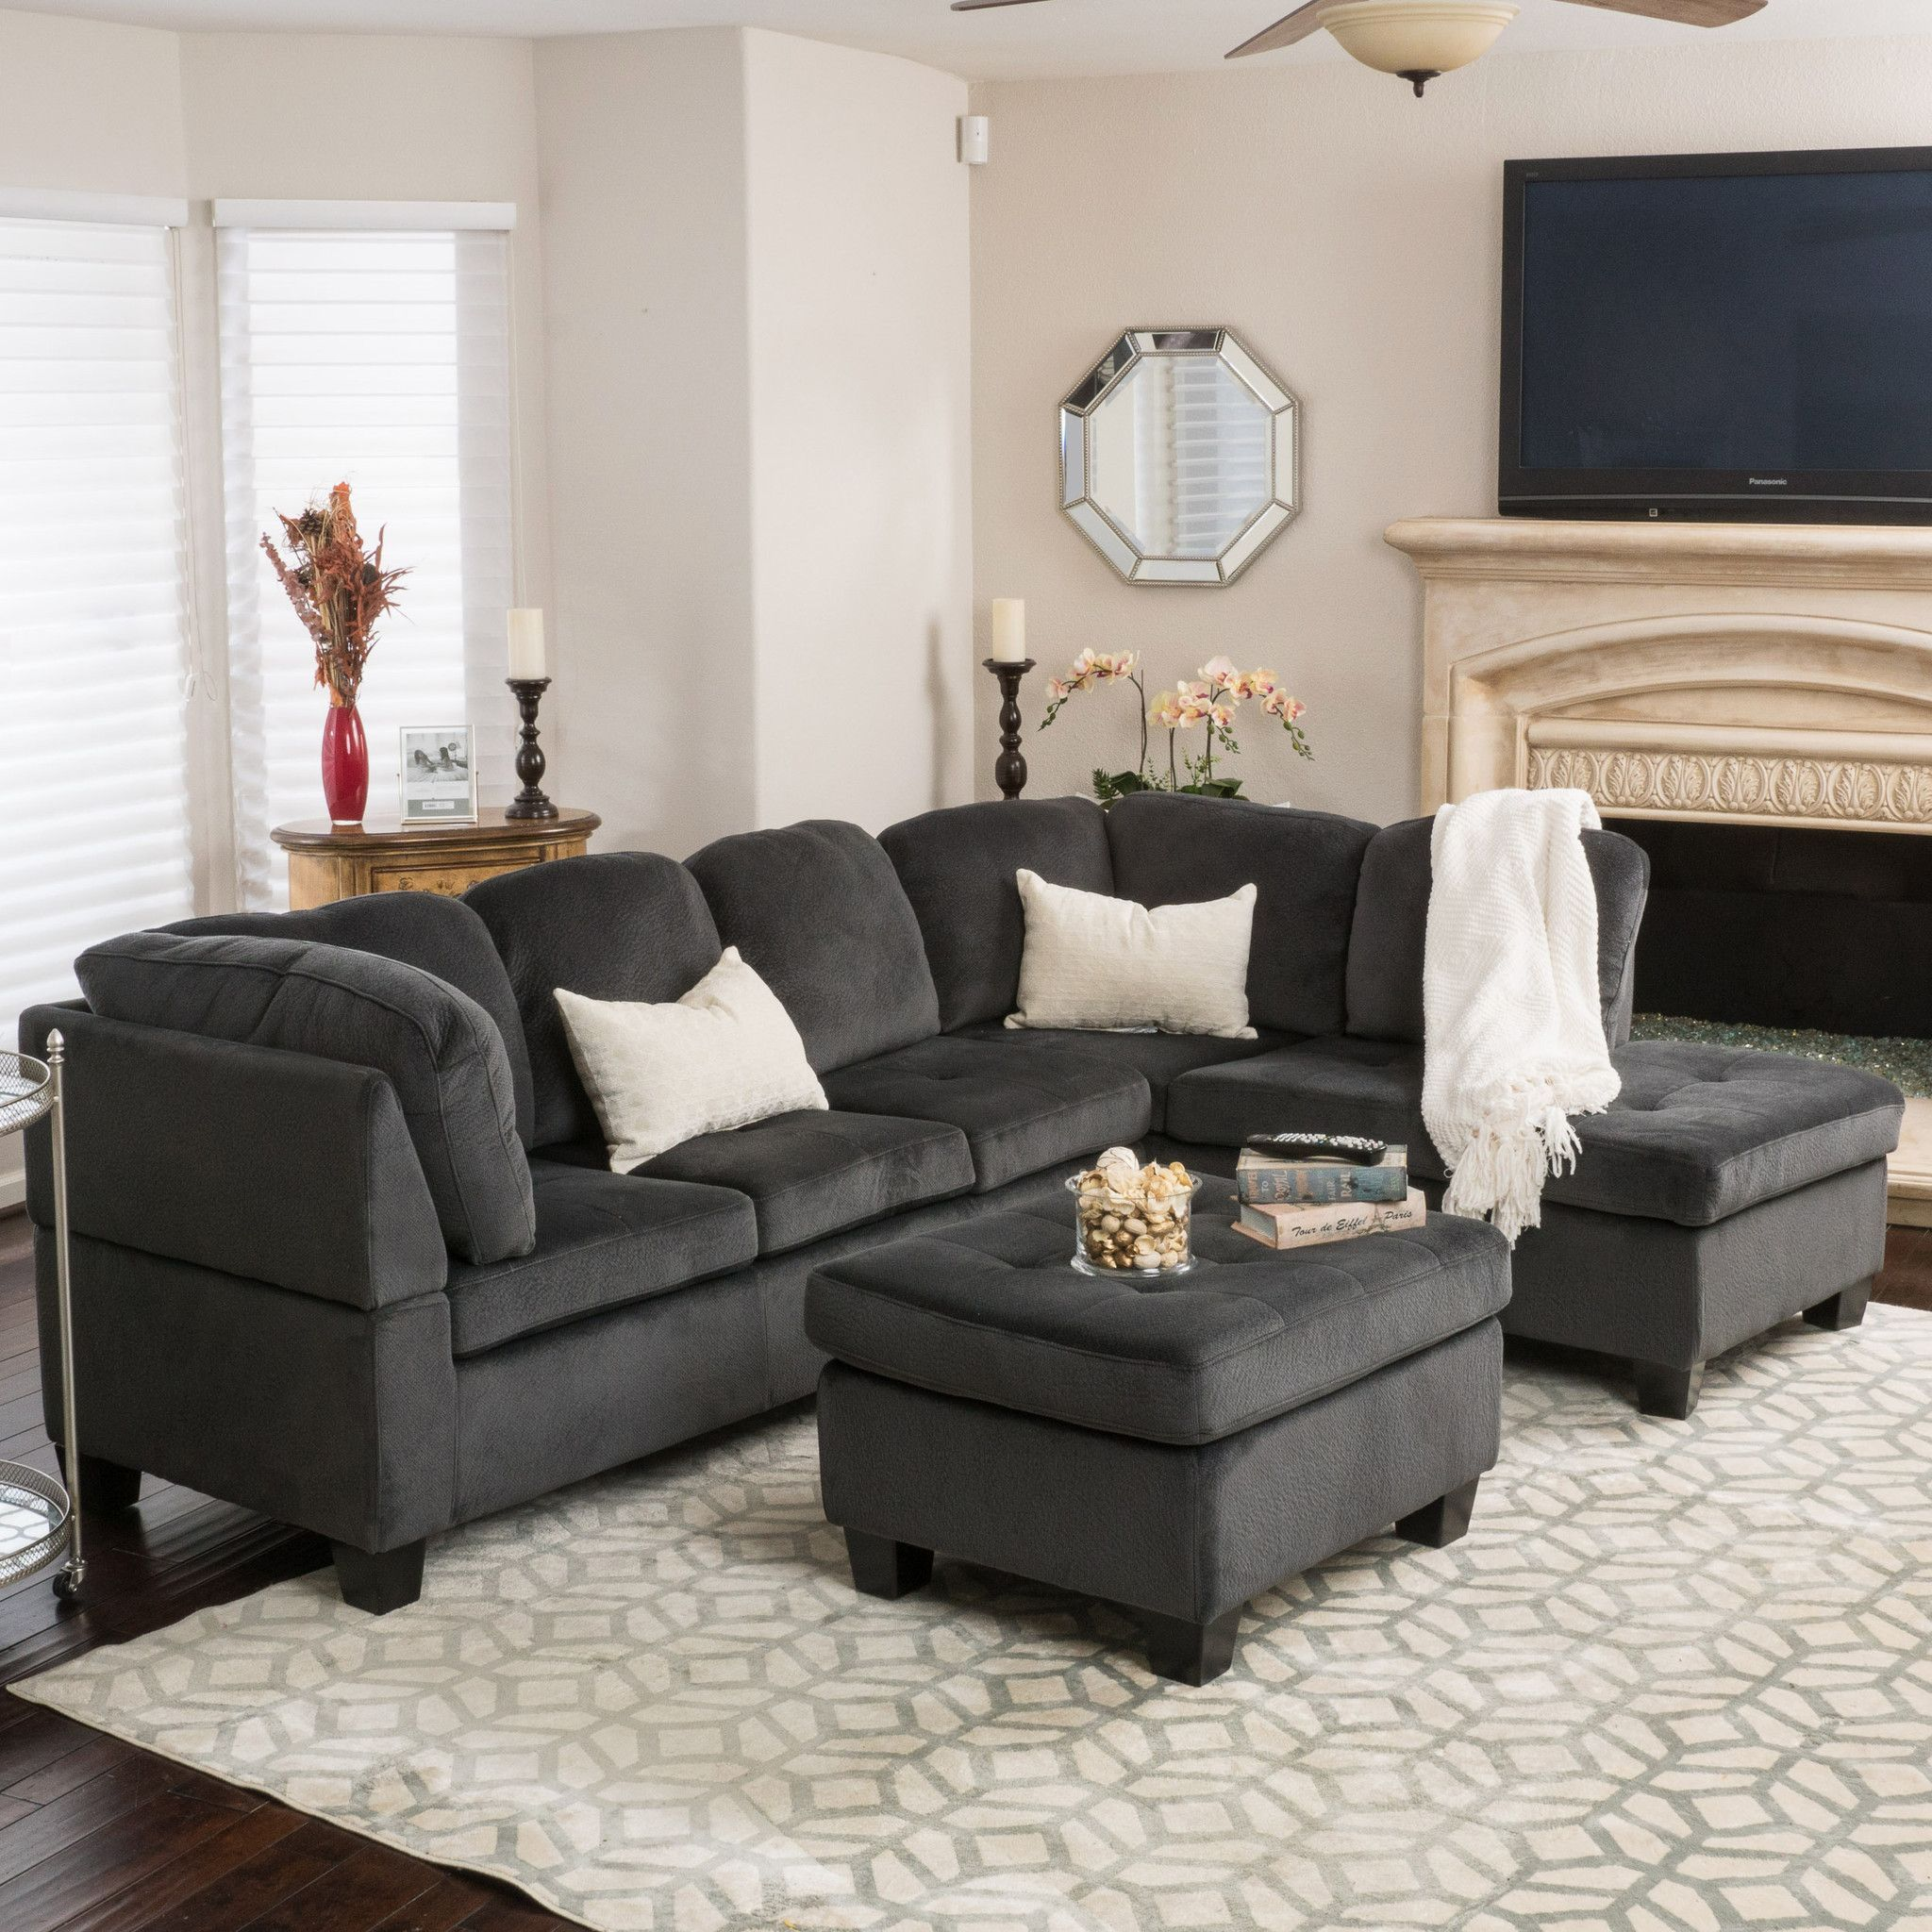 Best Gotham 3 Piece Charcoal Fabric Sectional Sofa Set 3 640 x 480